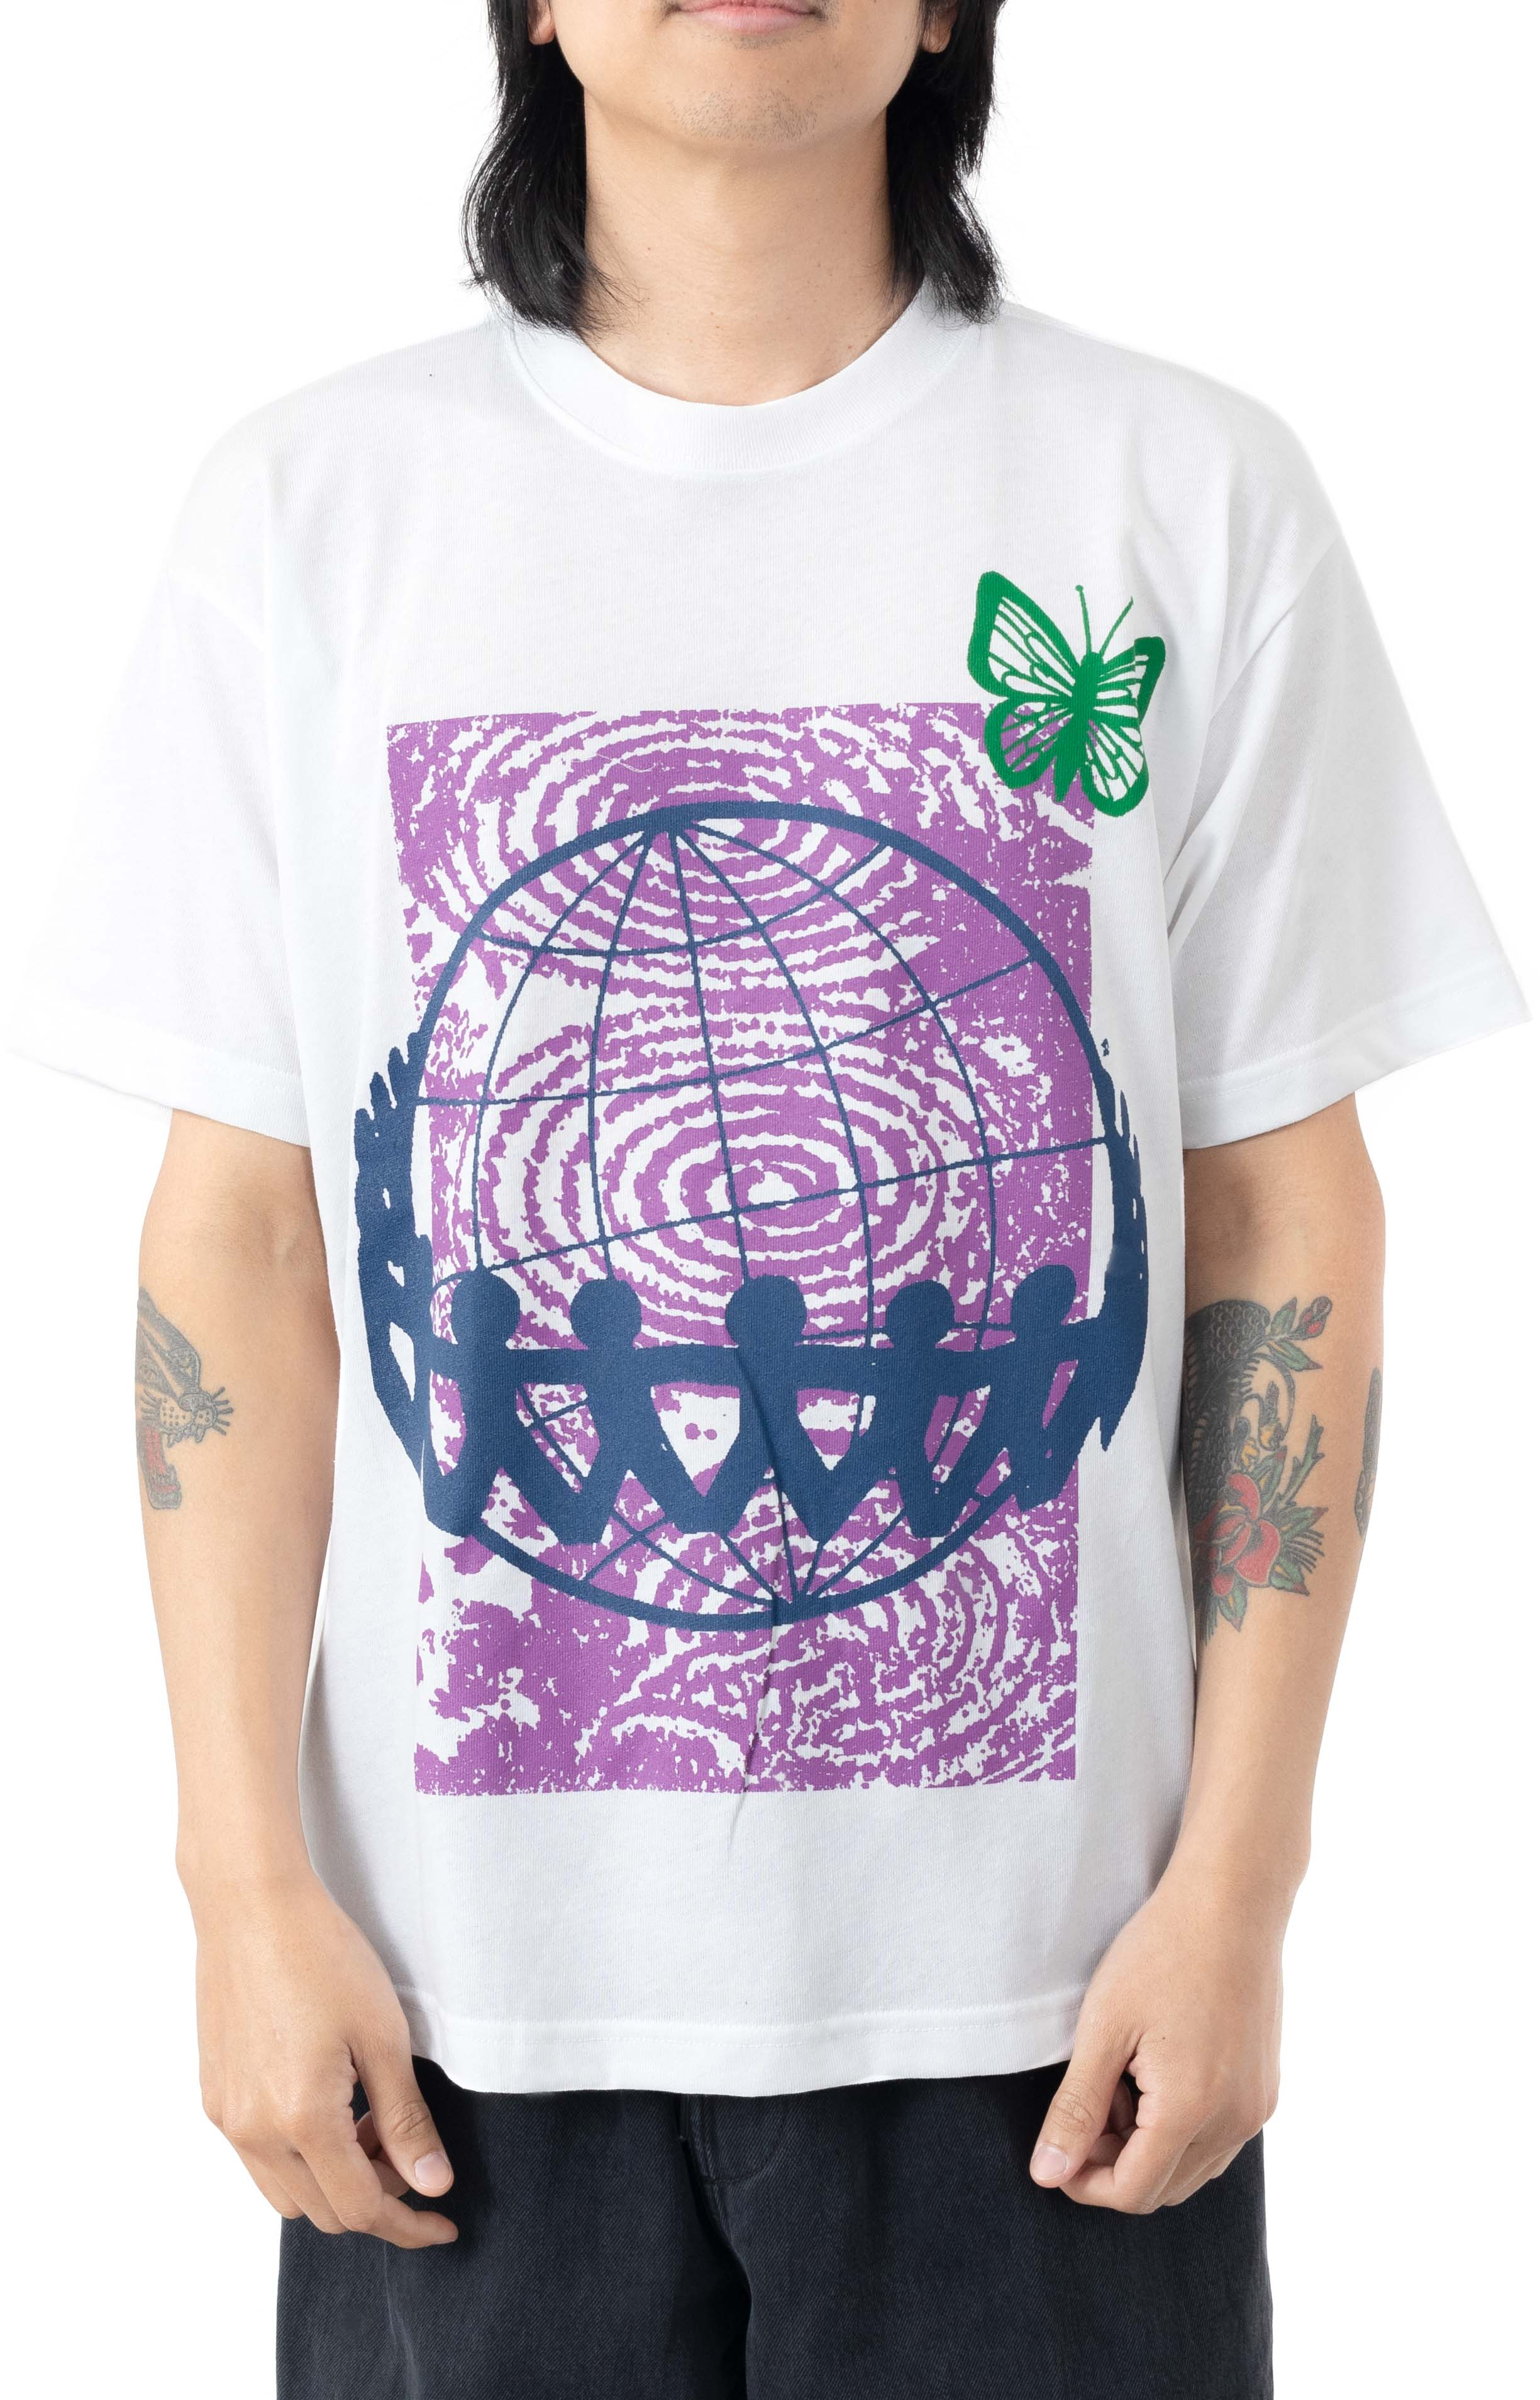 No Sides On A Round Planet 2 T-Shirt - White